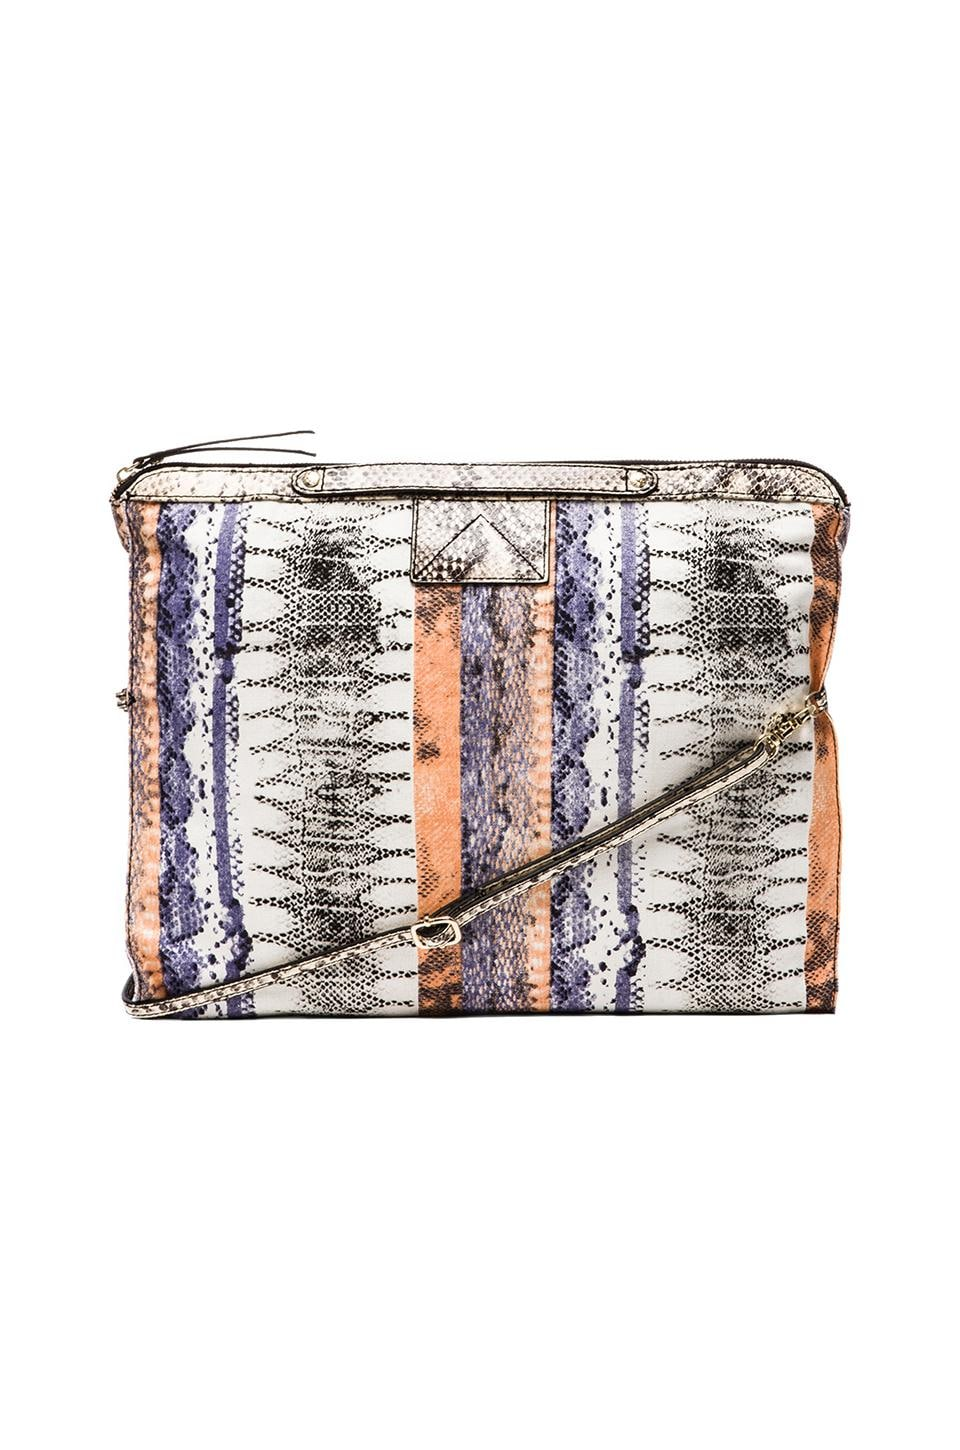 Twelfth Street By Cynthia Vincent Bankers Printed Snake Leather Crossbody Bag in Patchwork Snake